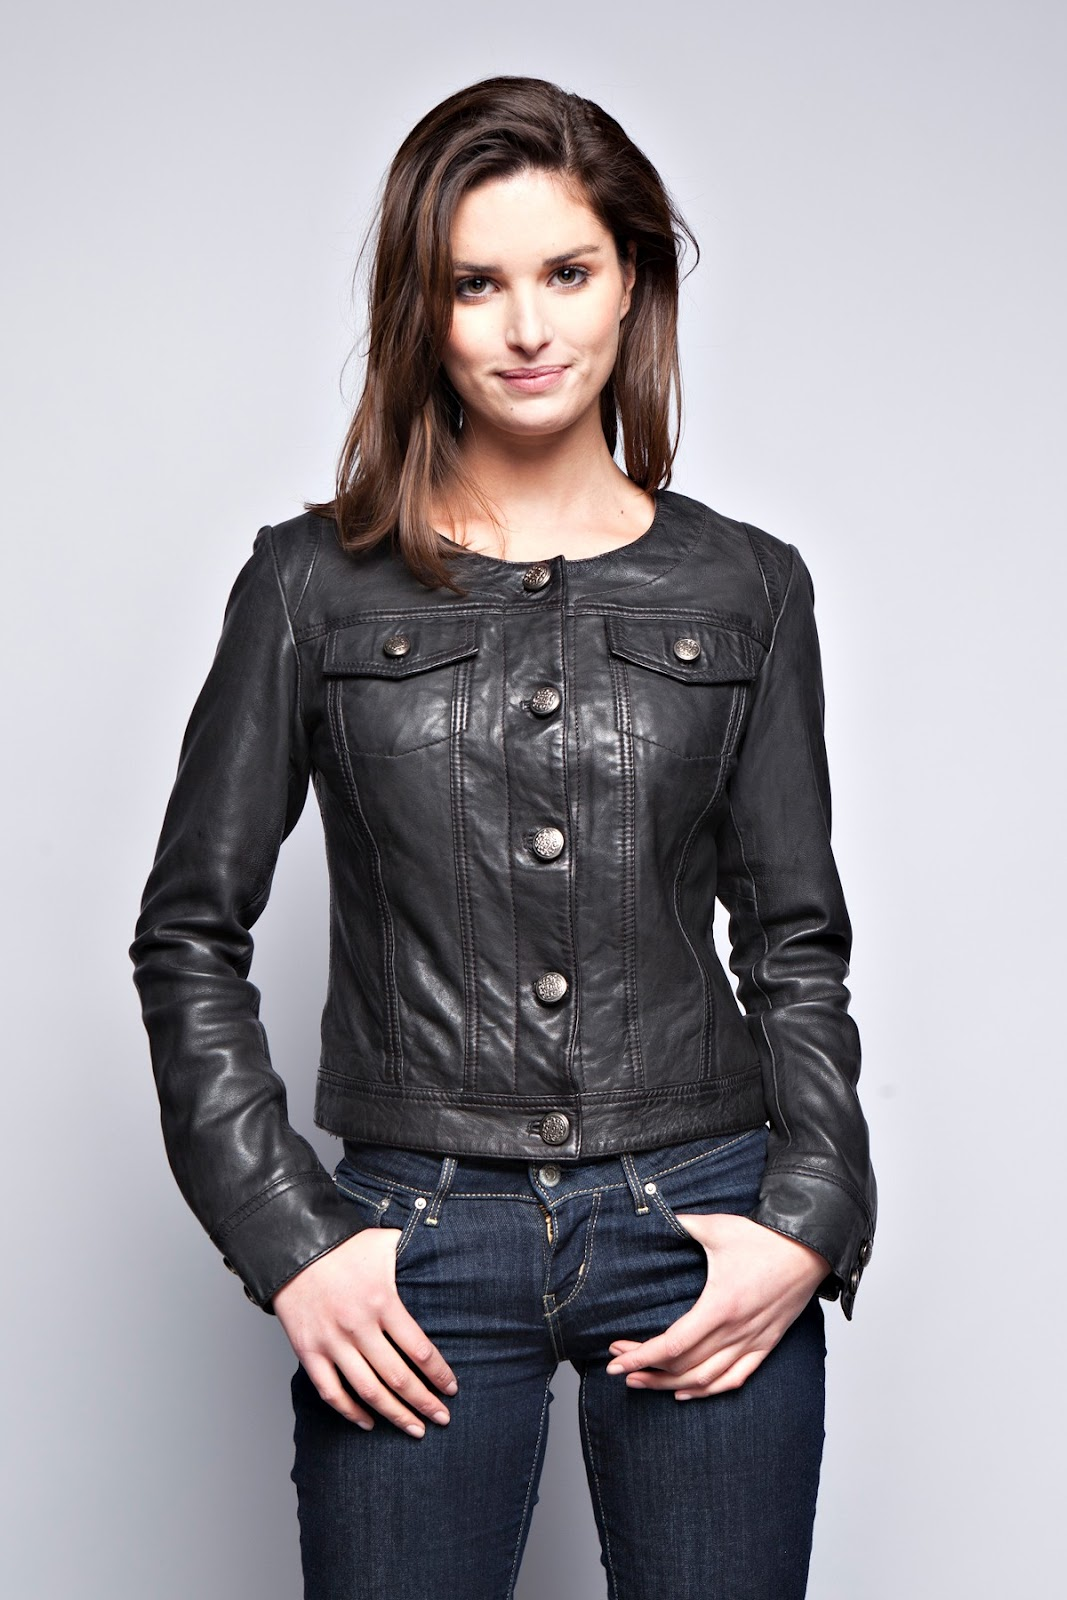 Free shipping and returns on leather & faux-leather coats & jackets for women at skytmeg.cf Shop the latest styles from brands like BLANKNYC, Bernardo, Halogen & more. Skip navigation Reserve Online & Try in Store.